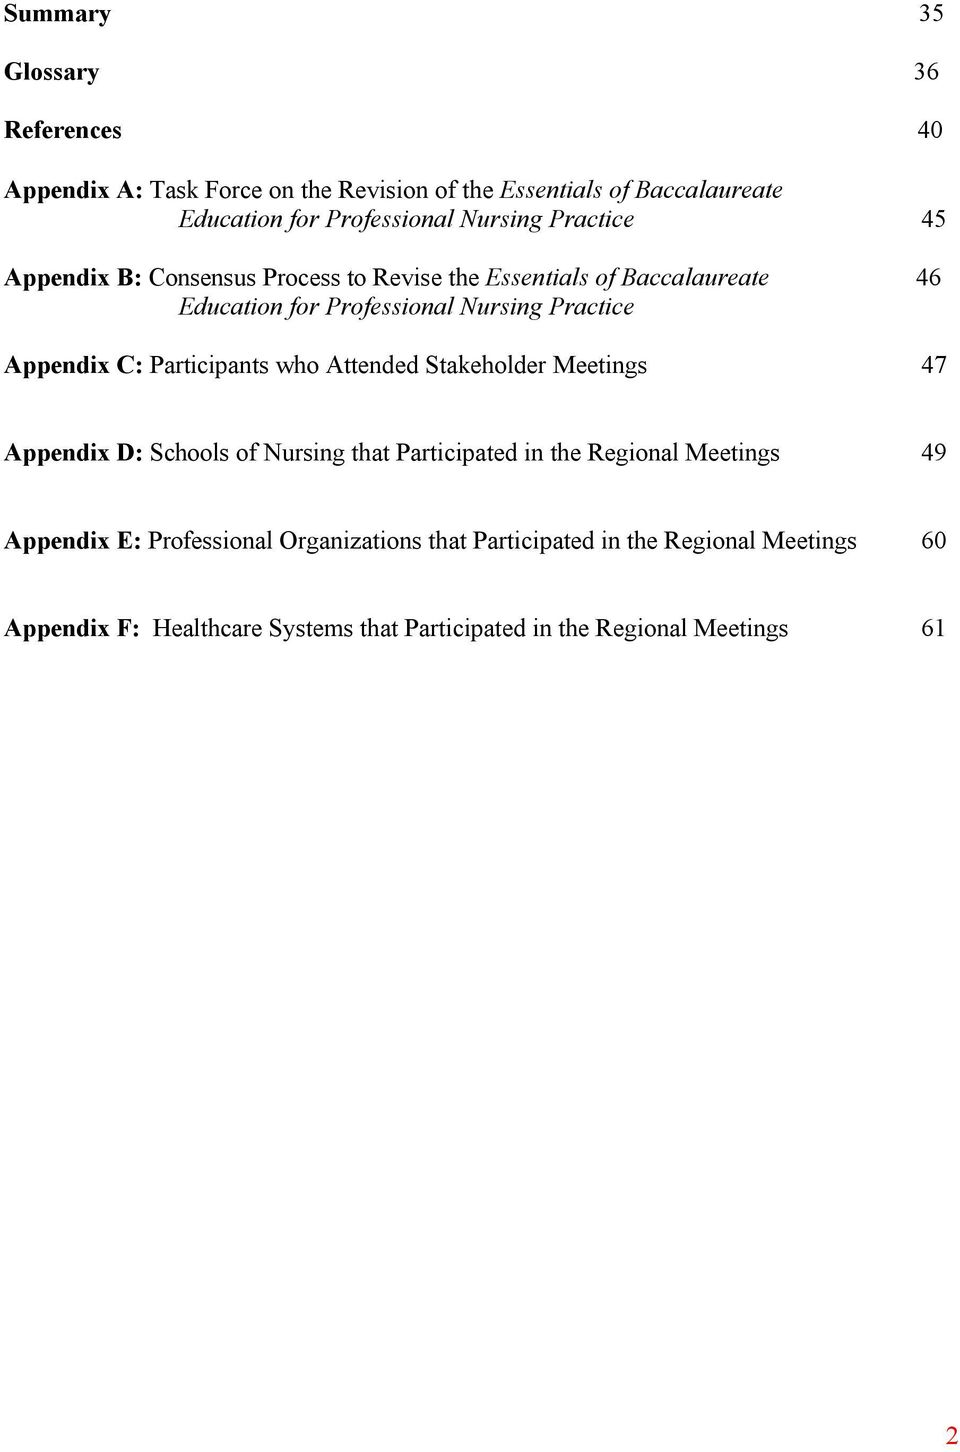 Appendix C: Participants who Attended Stakeholder Meetings 47 Appendix D: Schools of Nursing that Participated in the Regional Meetings 49